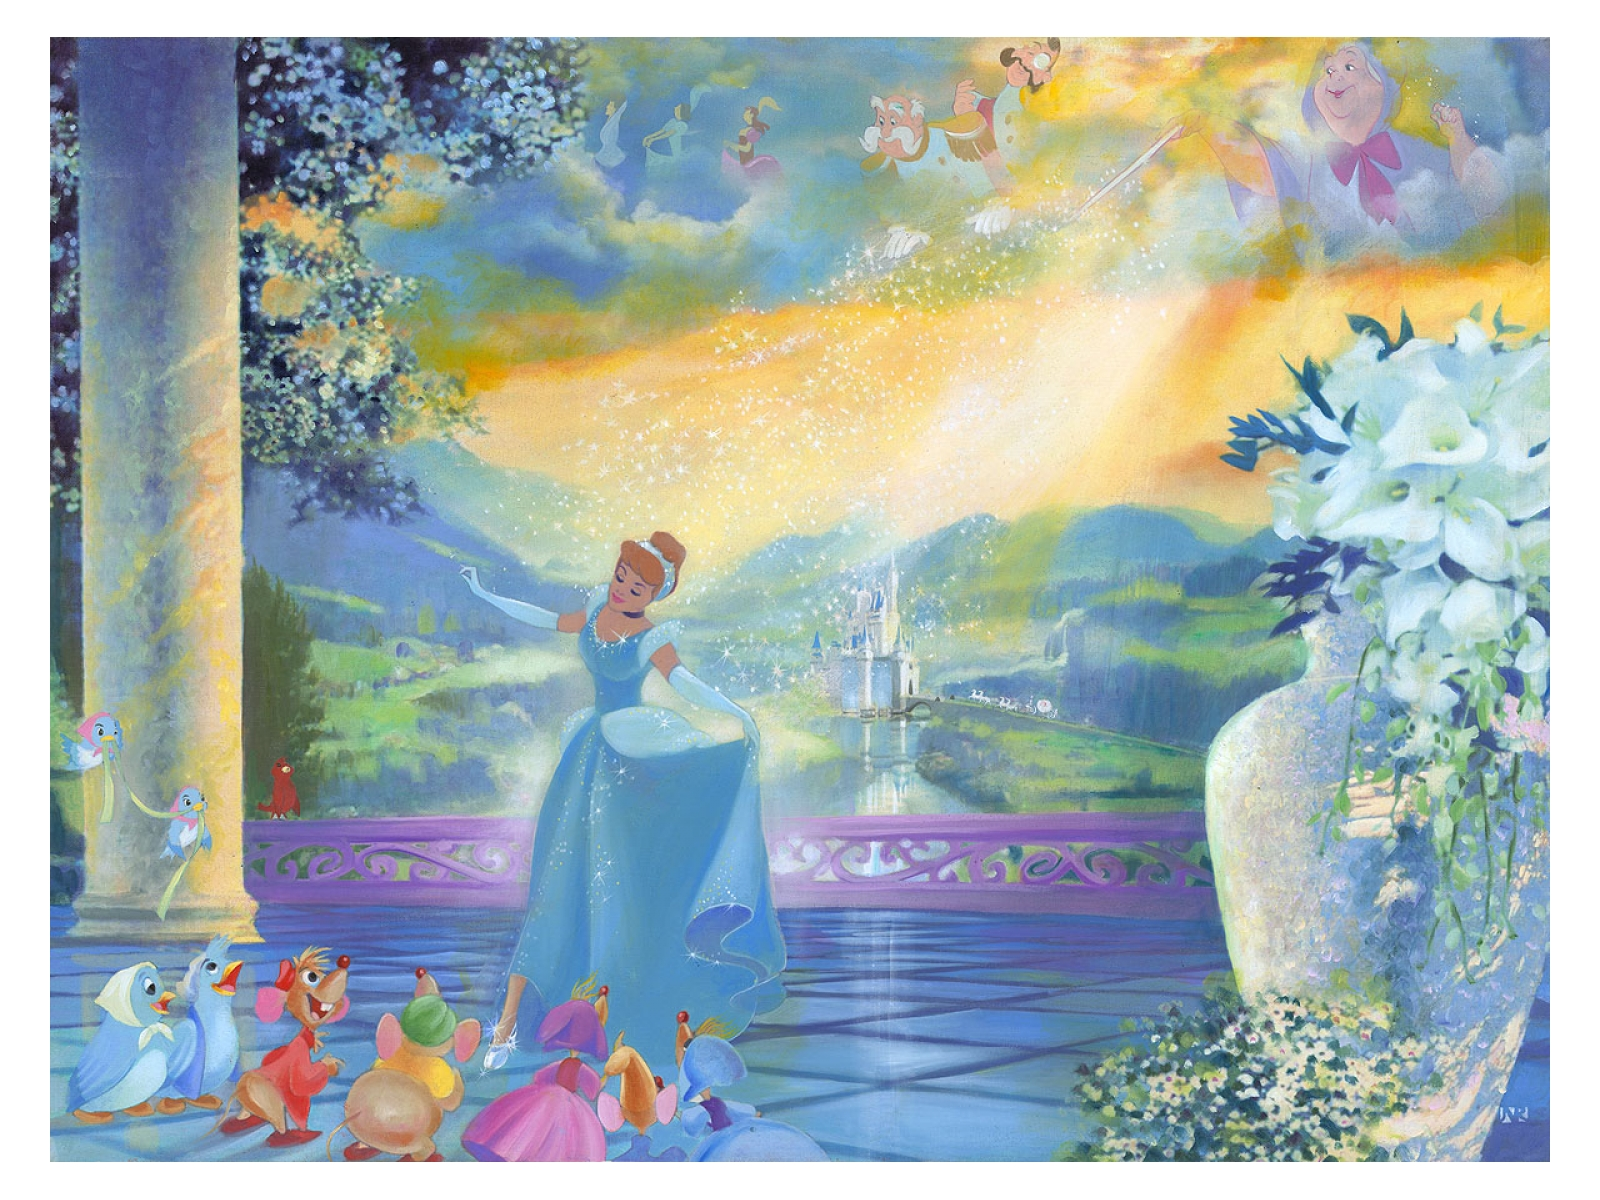 The Life She Dreams Of by John Rowe Treasures on Canvas gift idea for $125